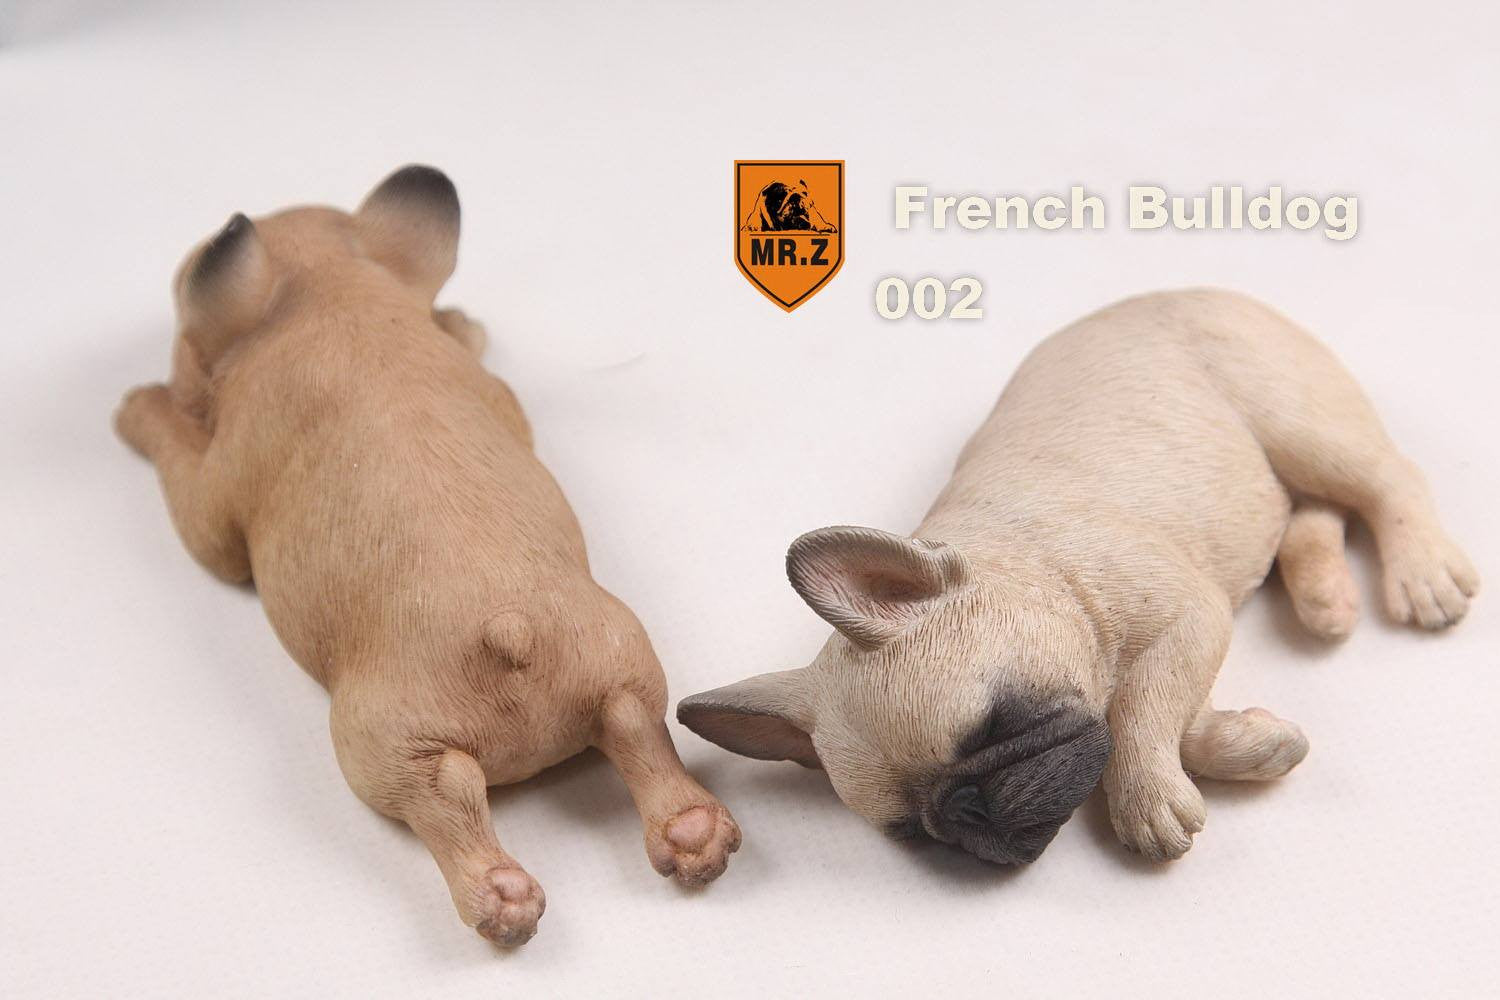 MR.Z - Real Animal Series No.9 - 1/6th Scale French Bulldog (Sleep Mode) 001-005 - Marvelous Toys - 9